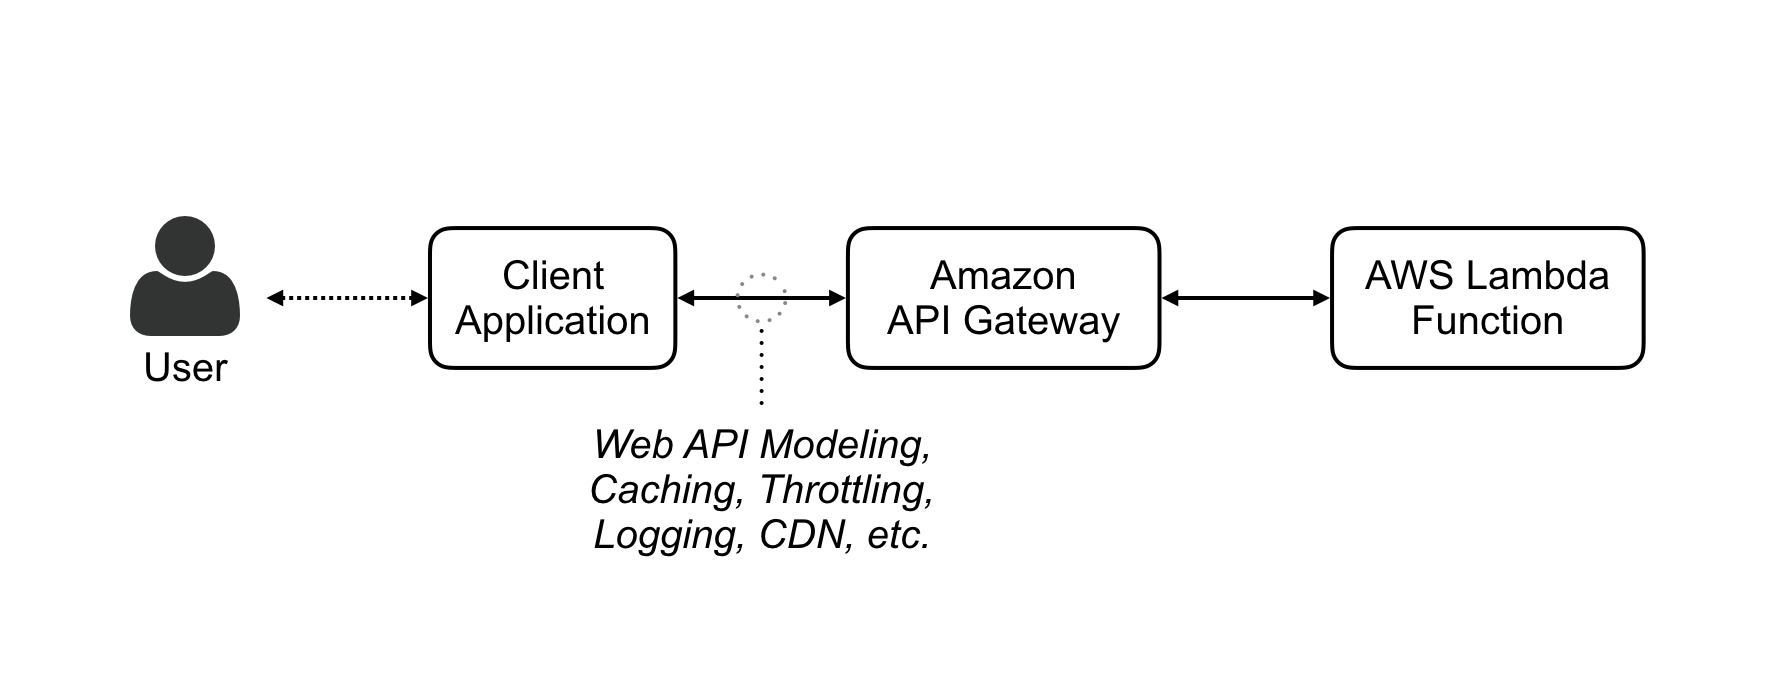 AWS Lambda: Calling functions from a web browser - Danilo